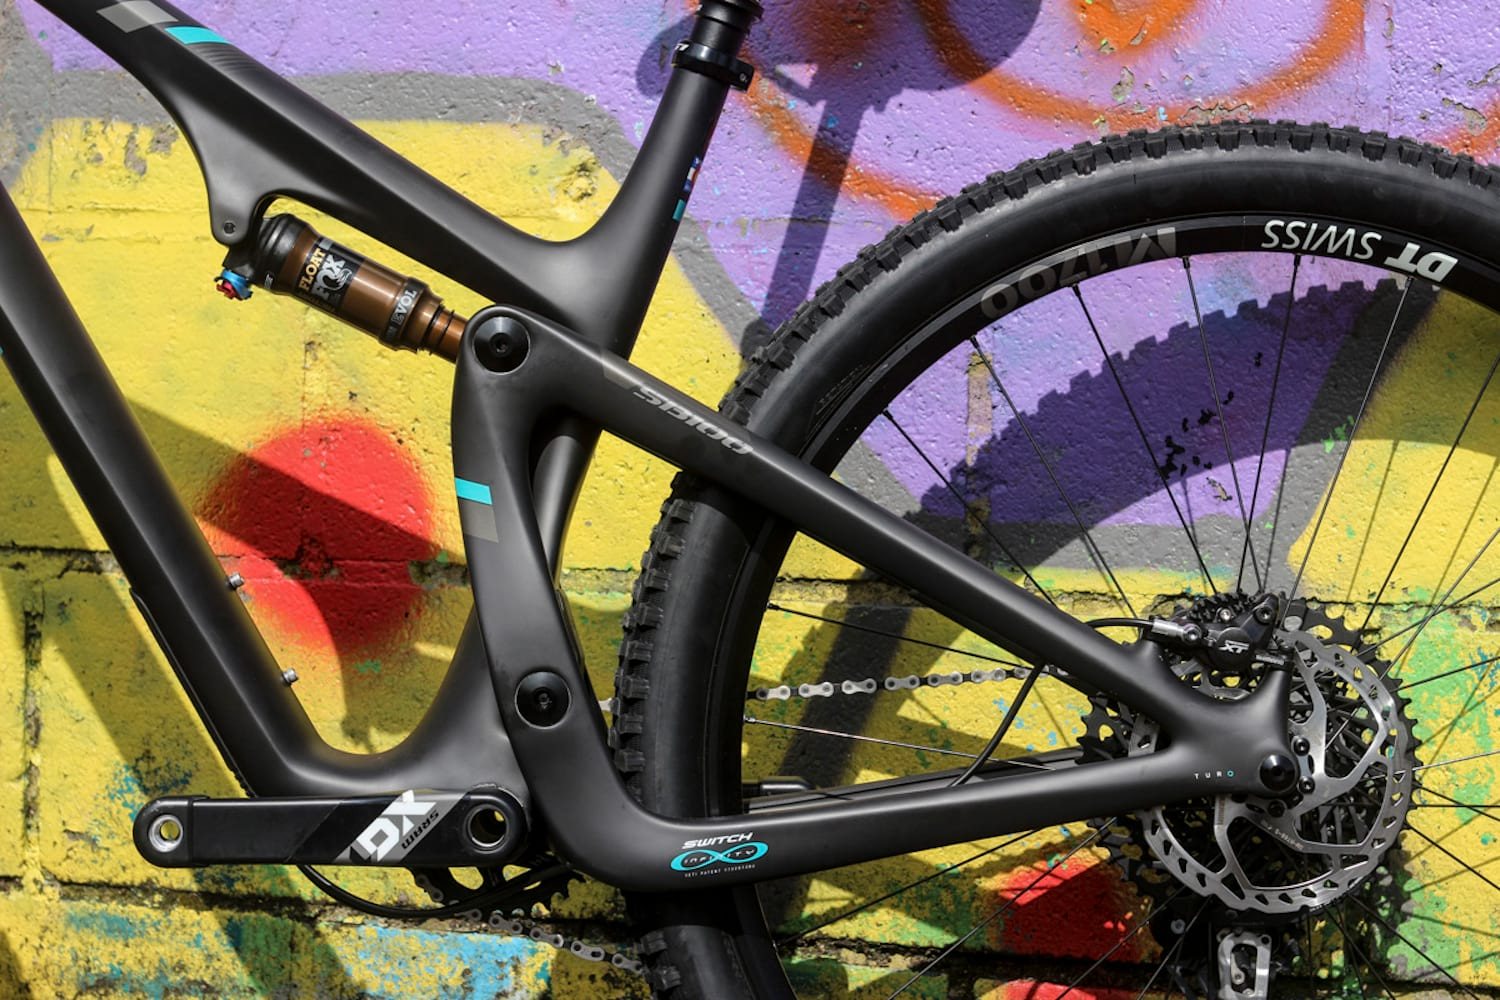 Yeti's new SB100 features a Switch Infinity suspension design like